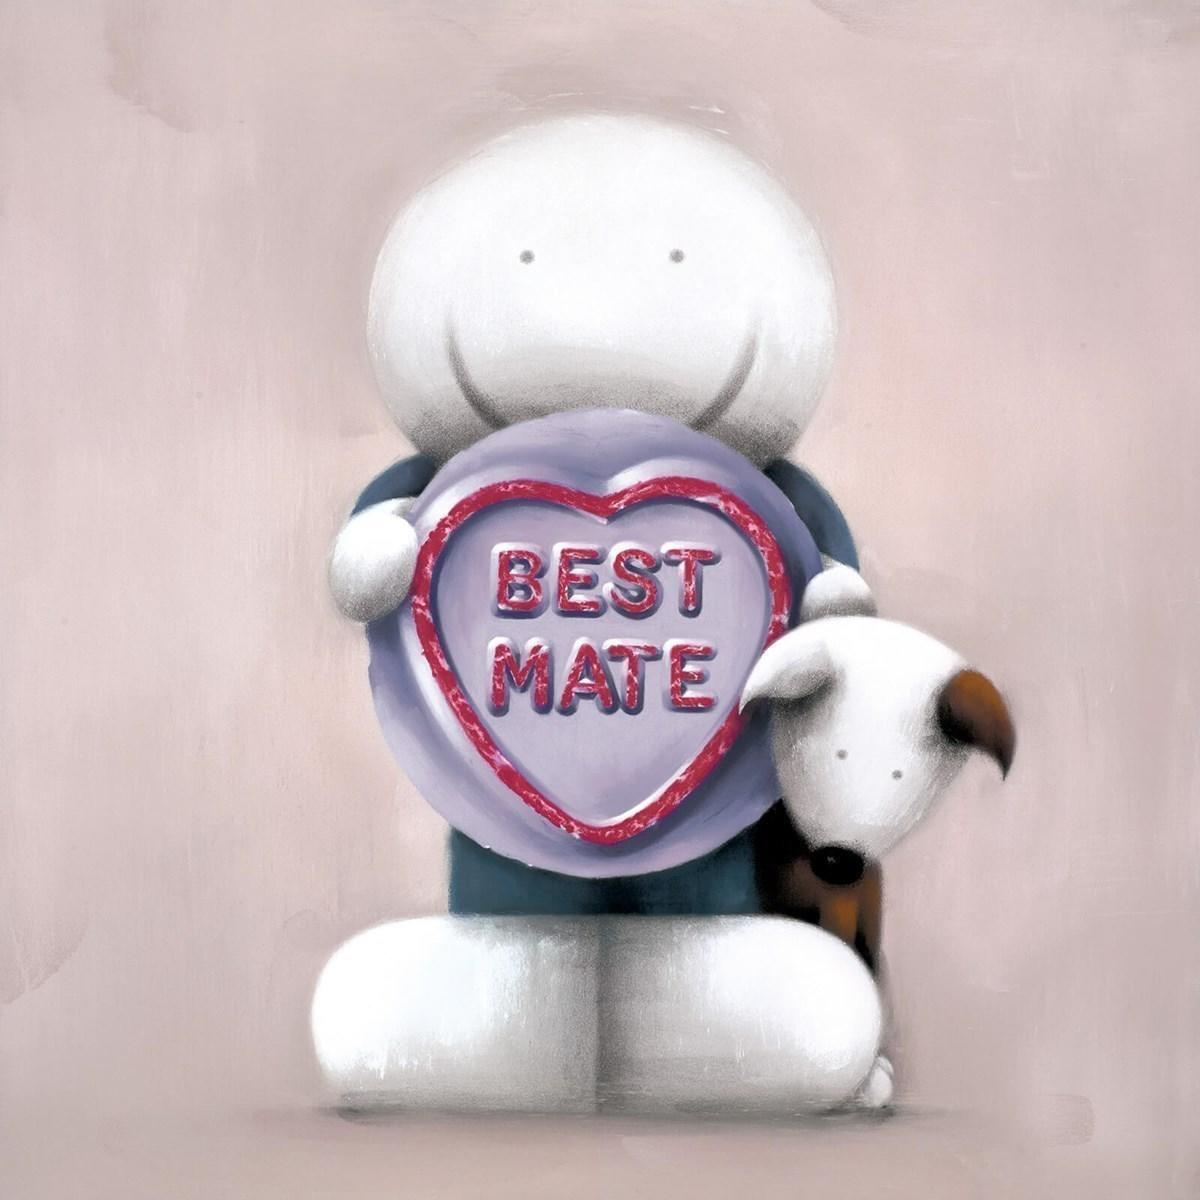 Best Mate by Doug Hyde - Limited Edition art print ZHYD722